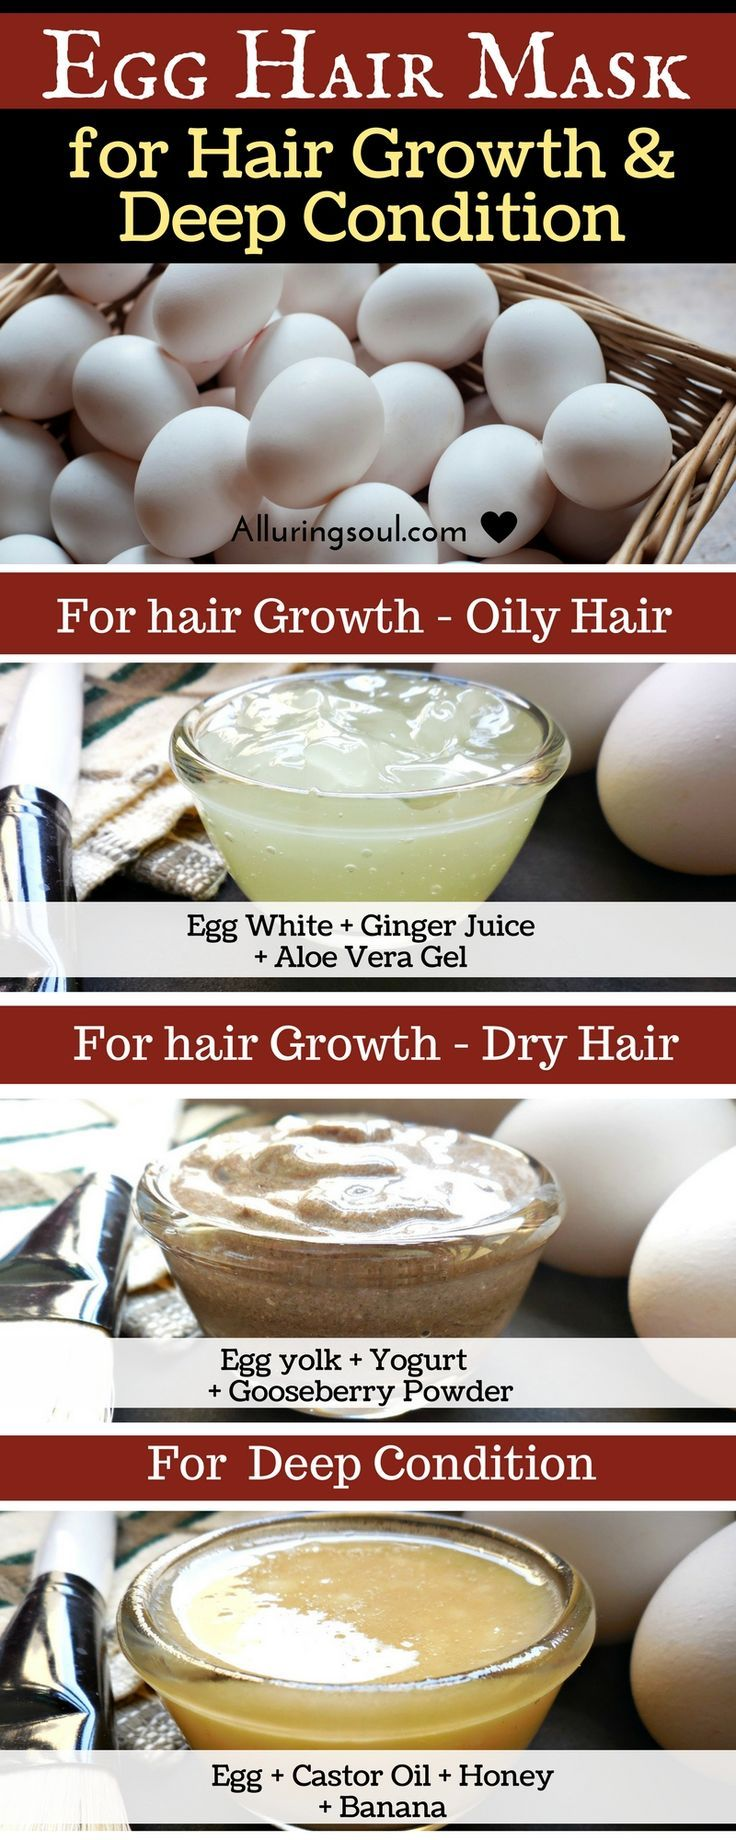 Natural Diy Hair Care Recipes Egg Mask For Hair Is An Effective Way